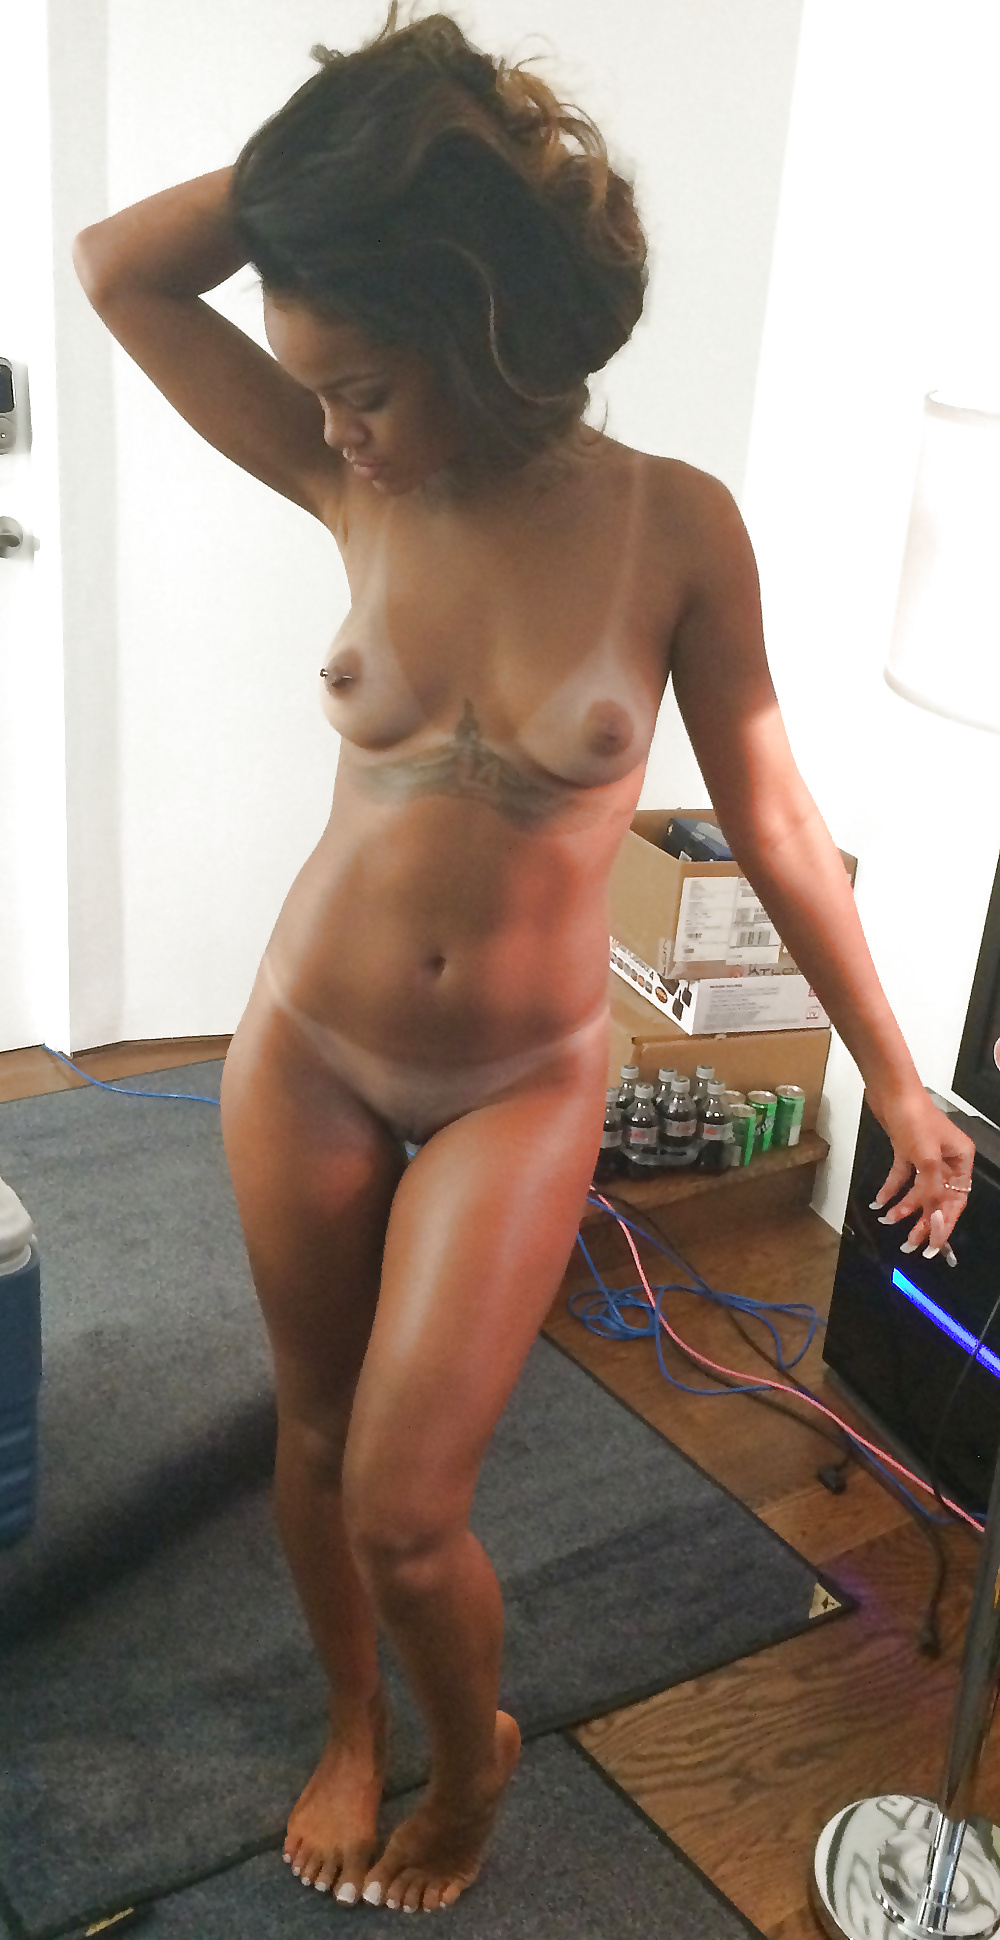 rihanna-on-a-bed-fully-naked-free-chubby-lesbian-orgy-video-galleries